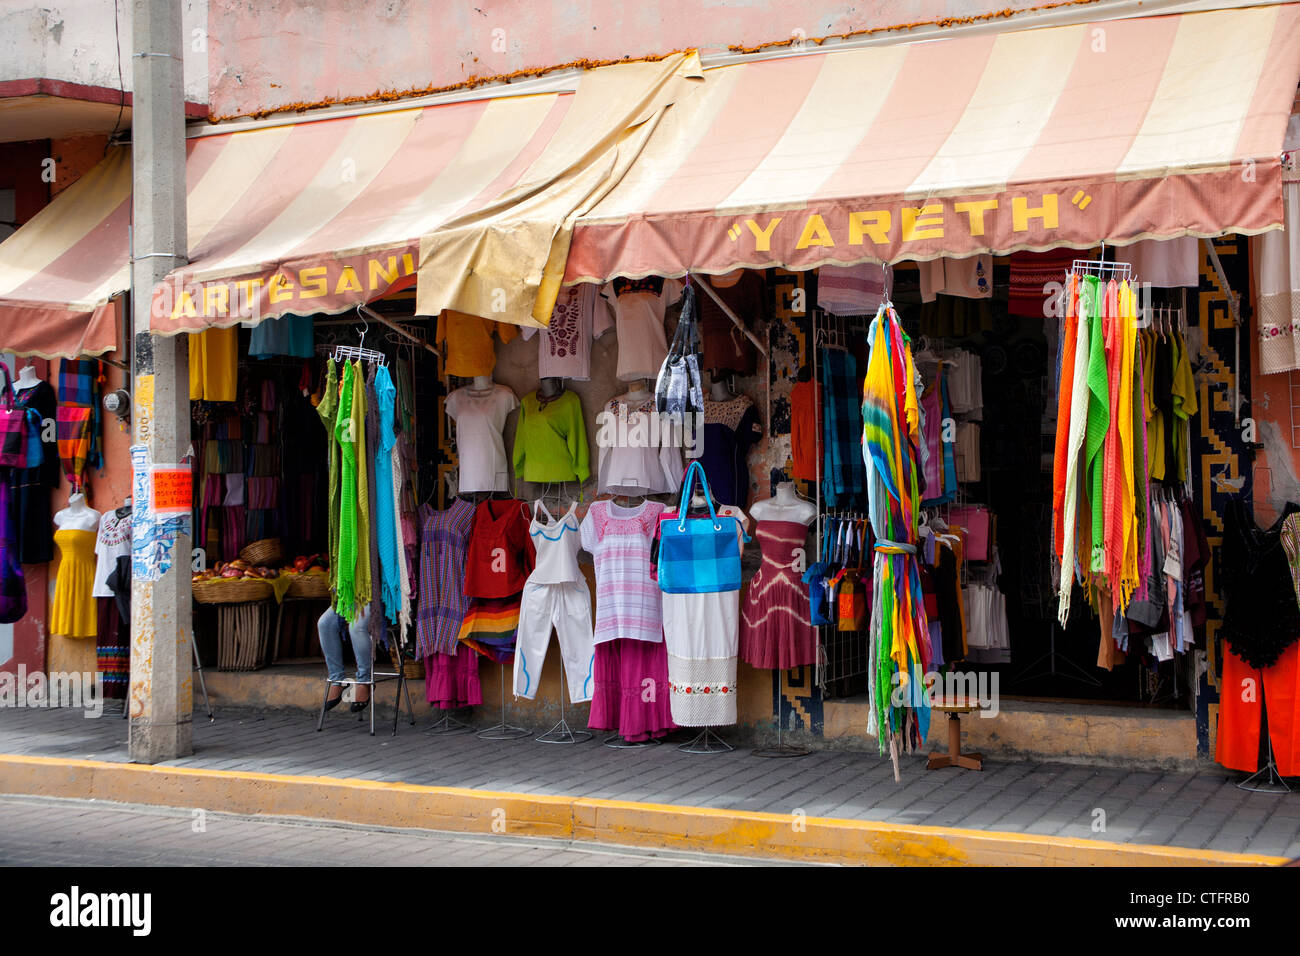 Colorful clothing in shop in Cholula, Mexico - Stock Image